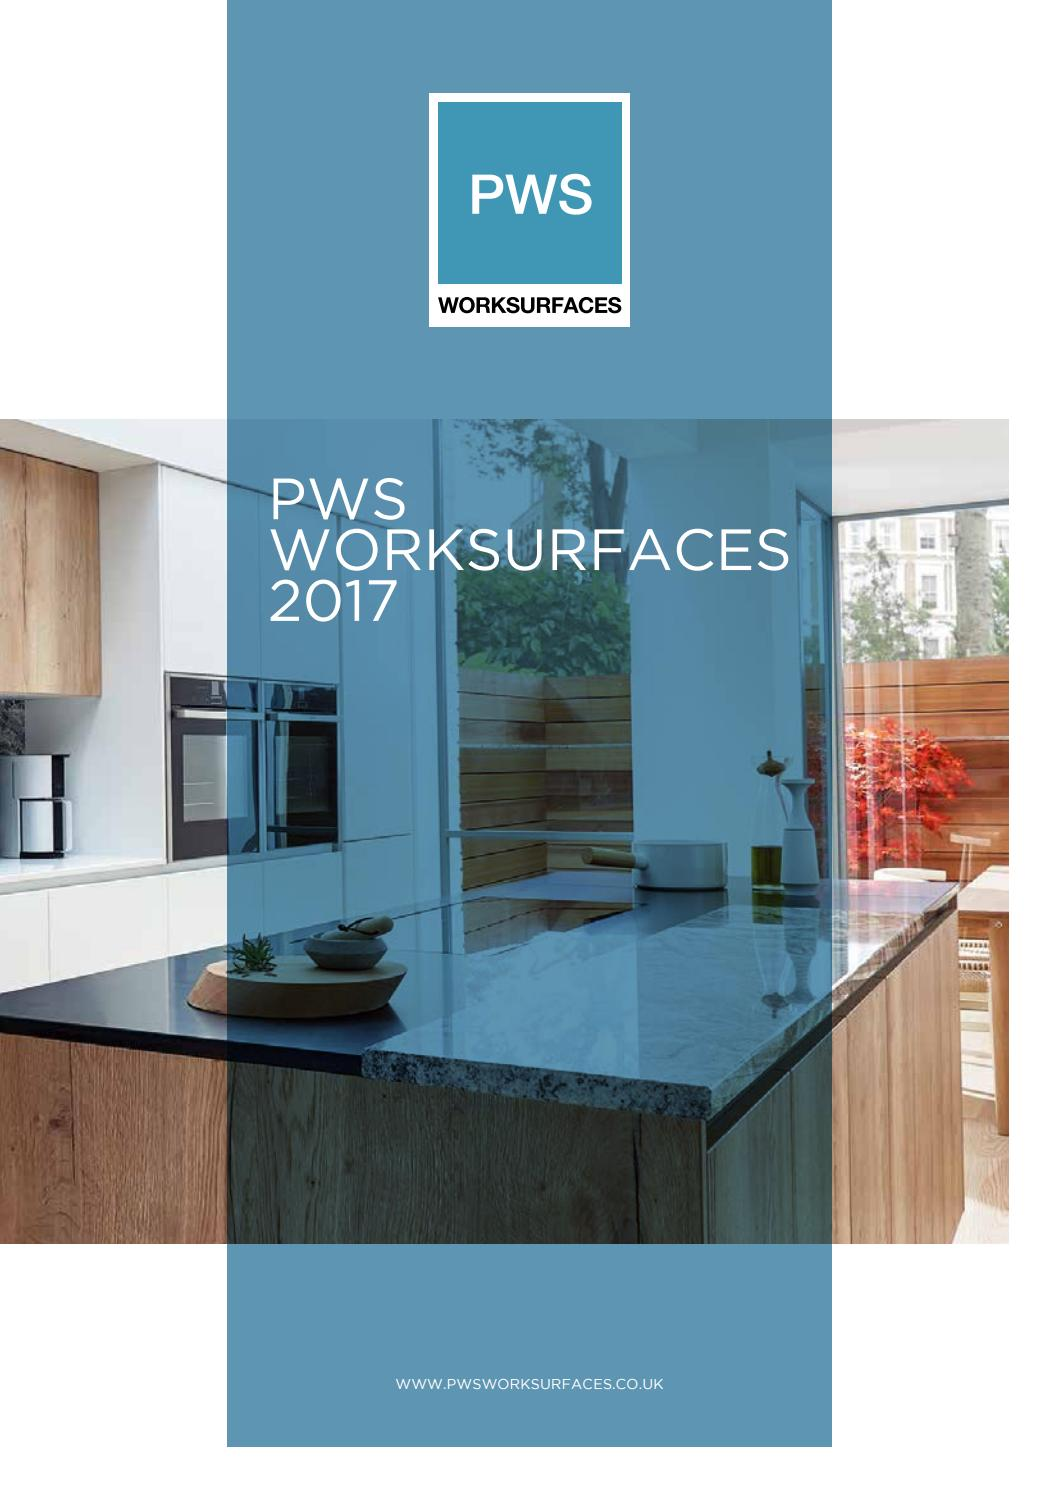 PWS Worksurfaces Directory 2017 by PWS Distributors Ltd - issuu